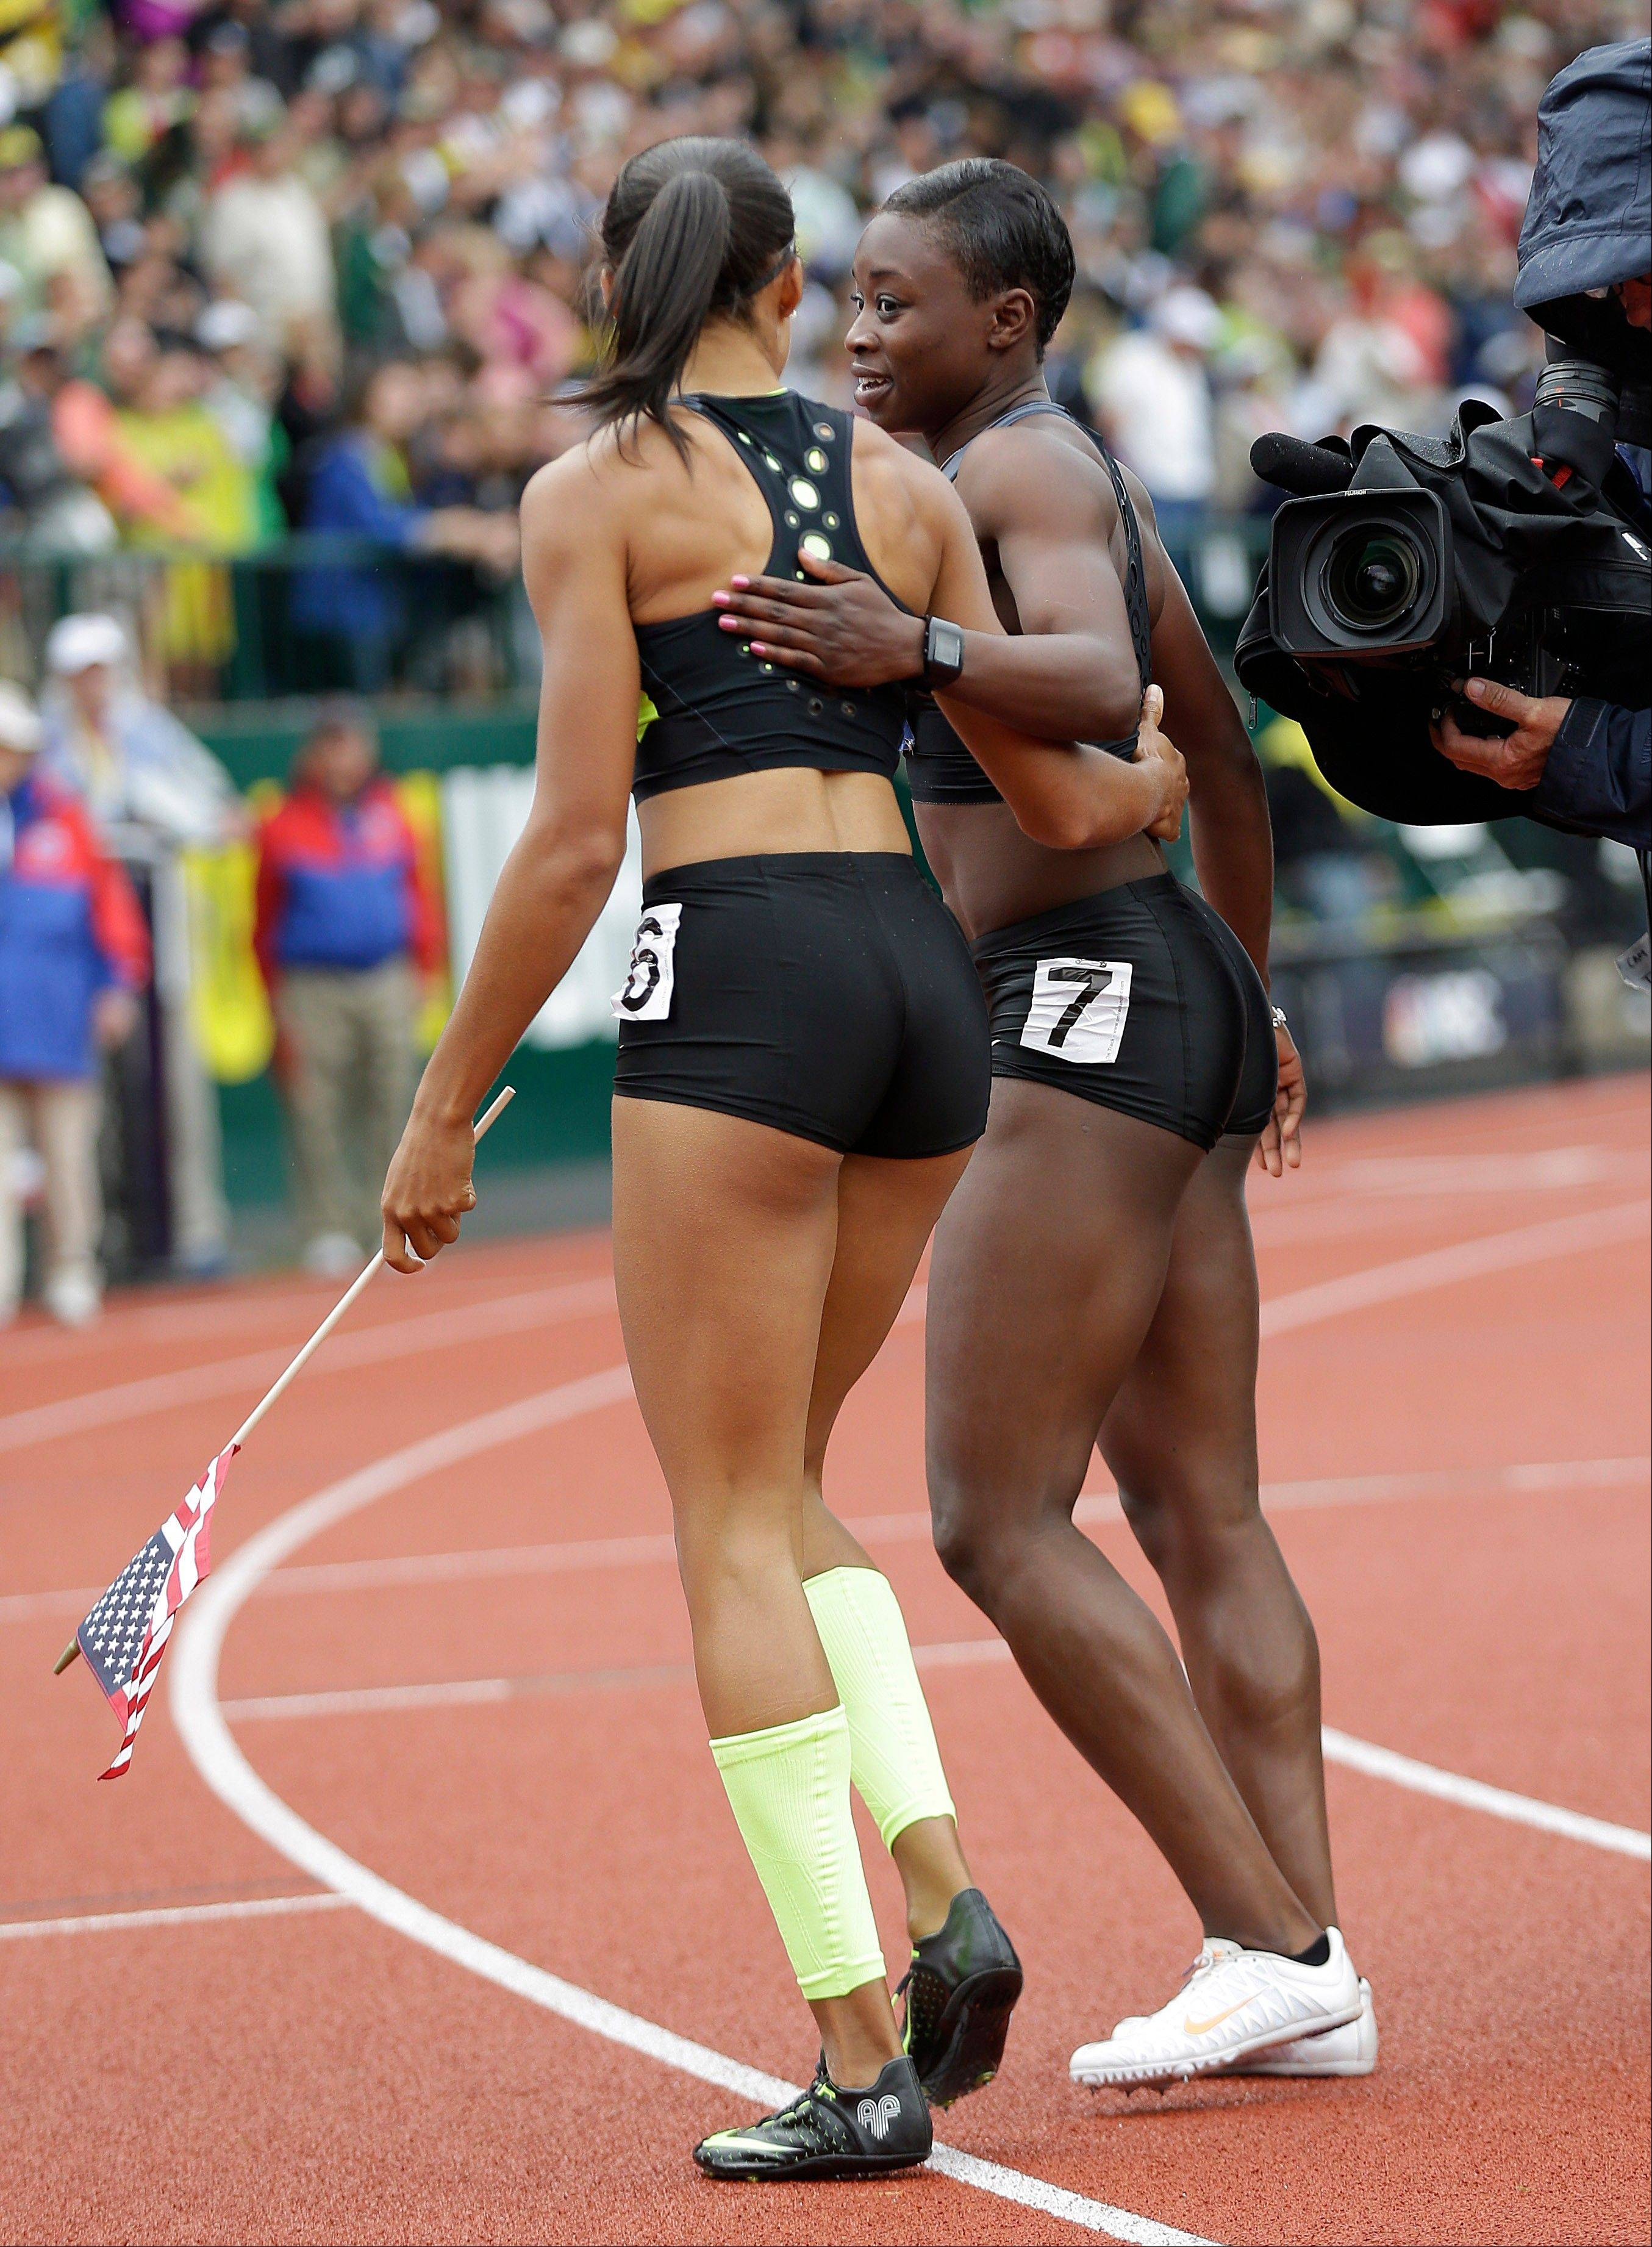 Allyson Felix, left, and Jeneba Tarmoh speak after the finish of the women's 200 meters at the U.S. Olympic Track and Field Trials Saturday, June 30 in Eugene, Ore. Felix won the 200 but she and Tarmoh tied for third place in the 100 meters. And Tarmoh backed out of the runoff scheduled for Monday.